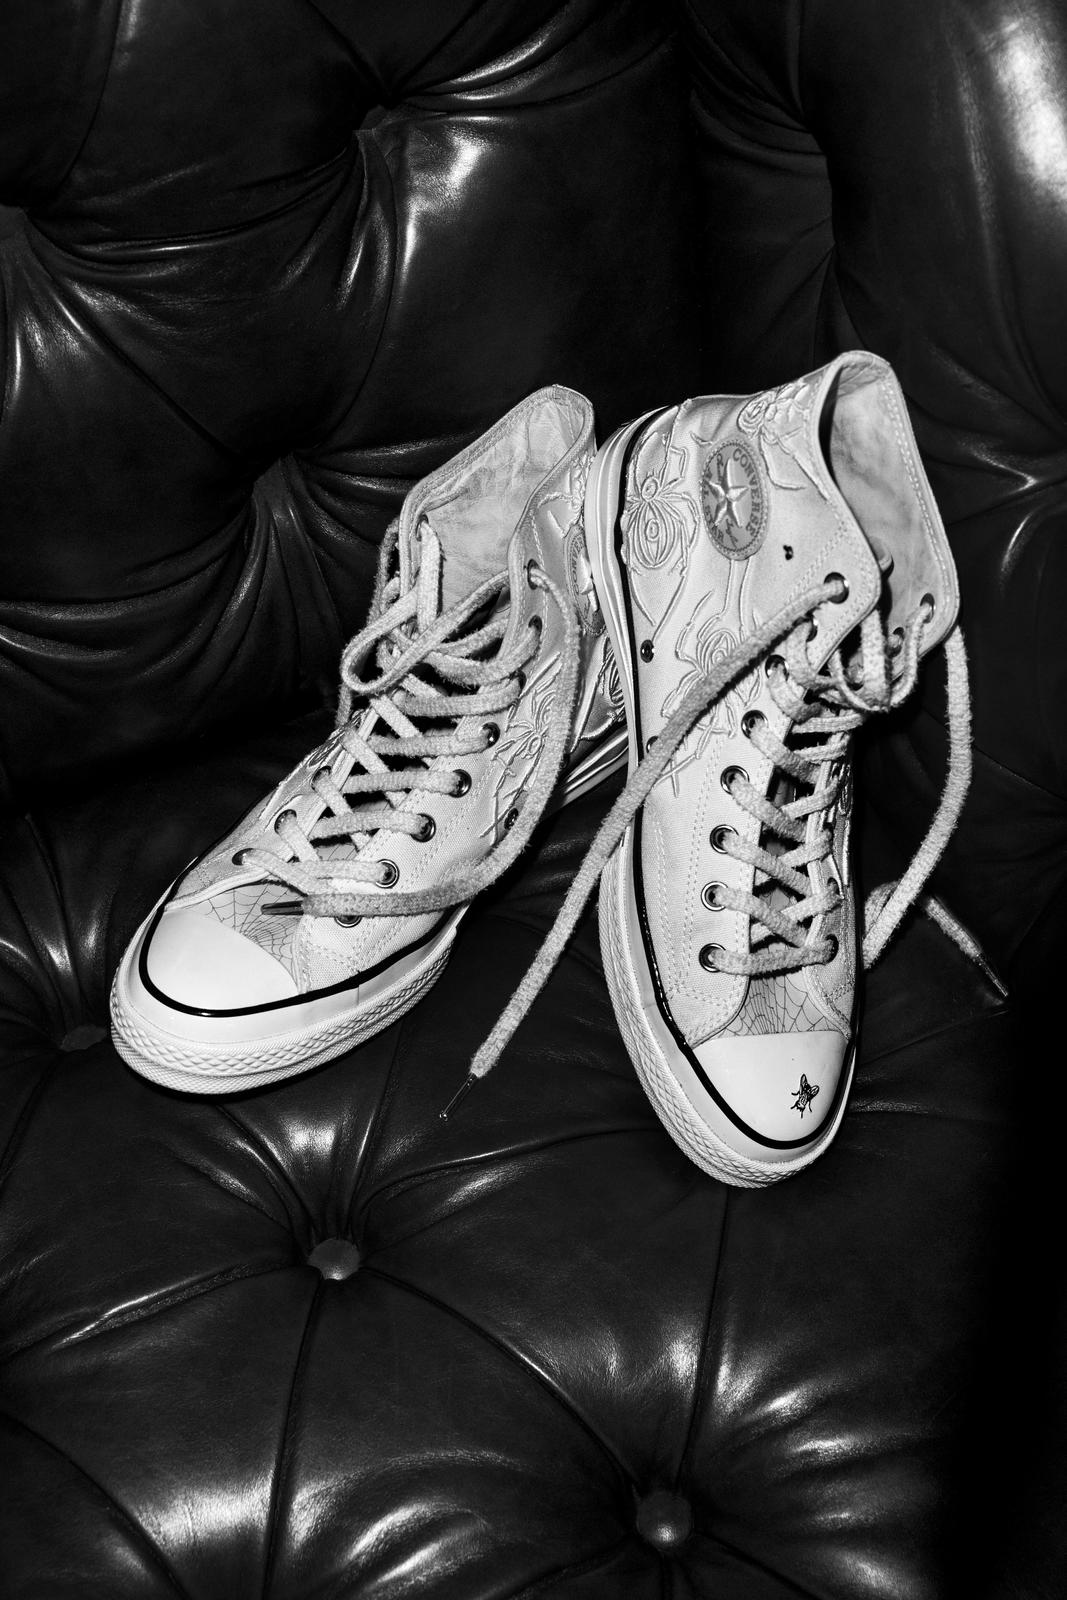 Converse and Dr. Woo Collaborate on the Chuck 70 3